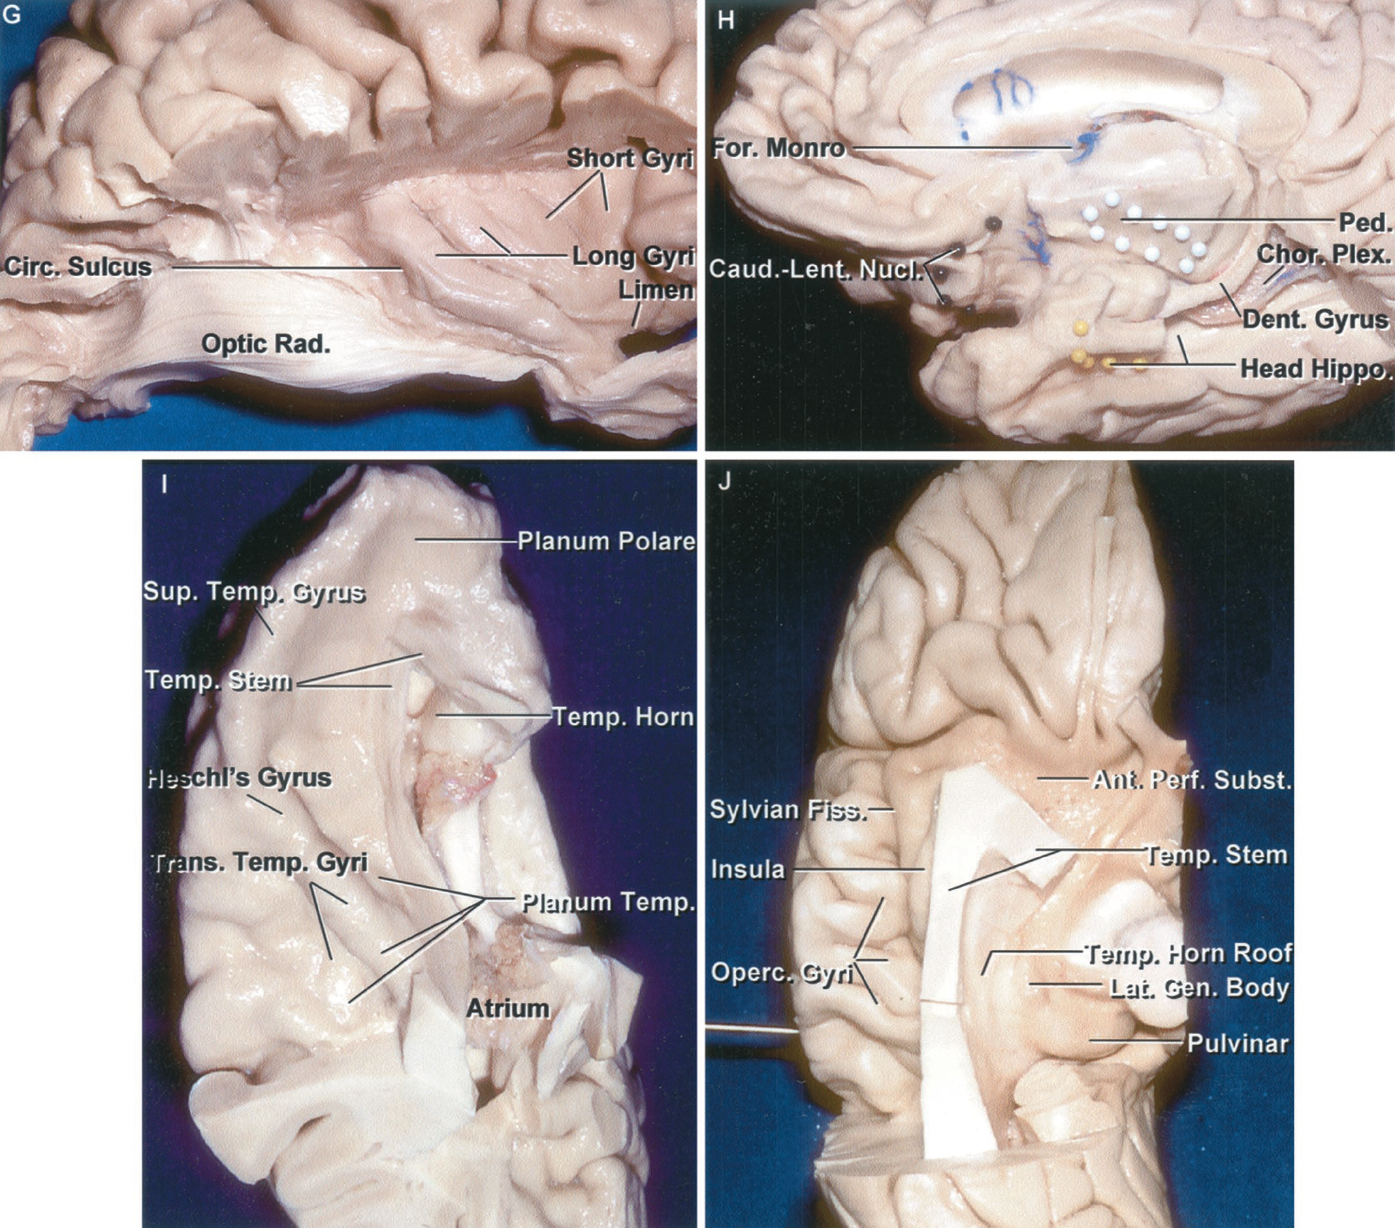 Figure 1.4 G-J. G, the temporal lobe has been removed and the optic radiations preserved. The lower margin of the insula is located superficially at approximately the deep level of the lateral geniculate body. The fibers of the optic radiation pass through the stem of the temporal lobe on their way back to the calcarine sulcus. H, inferomedial view of the basal frontal and medial temporal lobes. The white dots outline the fibers descending to form the cerebral peduncle. Black pins outline the deep position of the caudate and lentiform nuclei above the anterior perforated substance and basal surface of the frontal lobe. The yellow pins outline the anterior margin of the head of the hippocampus. The posterior part of the head of the hippocampus has been exposed by removing the medial part of the parahippocampal gyrus. I, superior view of the upper surface of the temporal lobe that forms the floor of the sylvian fissure. The transverse temporal gyri, the most anterior of which is Heschl's auditory projection area, form the posterior part of the upper surface of the temporal lobe, called the planum temporale. The anterior part of the upper surface, called the planum polare, is free of gyri and has a shallow trough to accommodate the course of the middle cerebral artery. The lateral edge of the planum polare is formed by the superior temporal gyrus. The stem of the temporal lobe, the relatively thin layer of white and gray matter that connects the temporal lobe to the lower insula, is positioned above the lateral and anterior edge of the temporal horn. J, inferior view of the frontoparietal operculum. The gyri on the lateral surface extend around the lower border of the frontal and parietal lobes to form the upper lip of the sylvian fissure. The optic radiations pass laterally from the lateral geniculate body and course in the roof of the temporal horn along the temporal stem and lateral to the atrium to reach the calcarine sulcus on the medial aspect of the occipital lobe. Ant., anterior; Caud., caudate; Cent., central; Chor., choroid, choroidal; Circ., circular; CN, cranial nerve; Dent., dentate; Fiss., fissure; For., foramen; Front., frontal; Gen., geniculate; Hippo., hippocampus; Lat., lateral; Lent., lentiform, lenticular; Mam., mamillary; Med., medial; Nucl., nucleus; Olf., olfactory; Operc., operculum, opercularis; Orb., orbitalis; Parahippo., parahippocampal; Ped., peduncle; Perf., perforated; Pit., pituitary; Plex., plexus; Post., posterior; Precent., precentral; Rad., radiations; Seg., segment; Subst., substance; Sup., superior; Temp., temporal, temporale; Tr., tract; Trans., transverse; Triang., triangularis; Vent., ventricle.